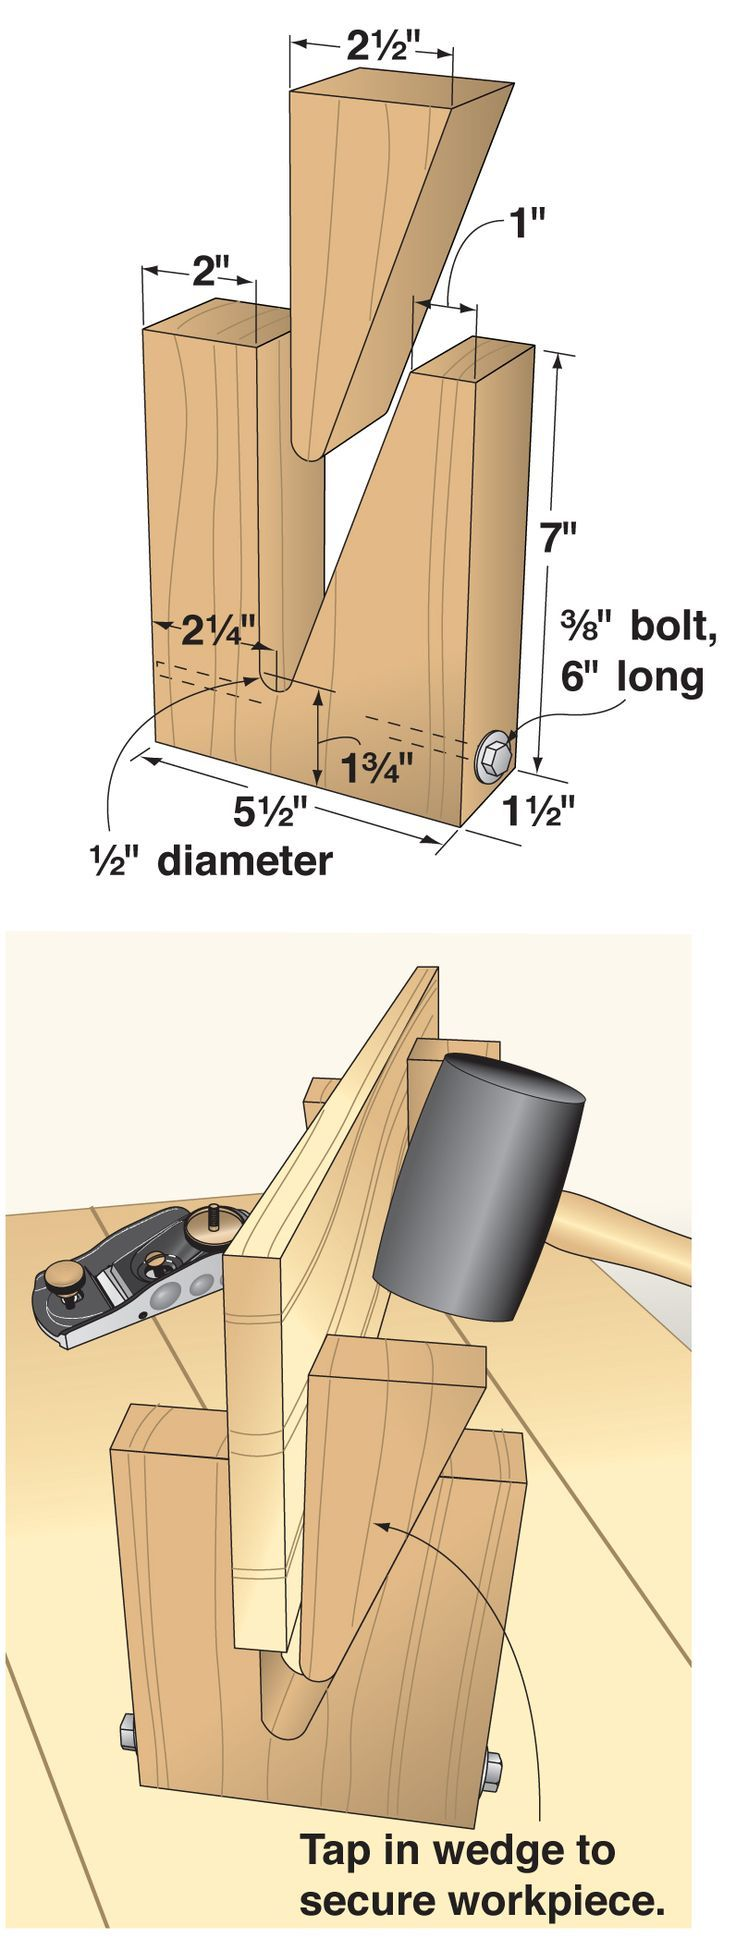 . Check website with best way to #learn #woodworking here: http://ewoodworking.ninja . For those occasions when you need a stable way to hold a board on its edge, turn to a tool that's as old as woodworking itself—the wedge. I fashioned the wedge stands shown at right from scraps of 2x6 and a 3/8x6 bolt and nut. To make the stand, cut a 7-long chunk from the 2x6 and drill a 1/2 hole centere d 2 1/4 from the edge and 1 3/4 up from the bottom. This hole reduces the likelihood of the stand…